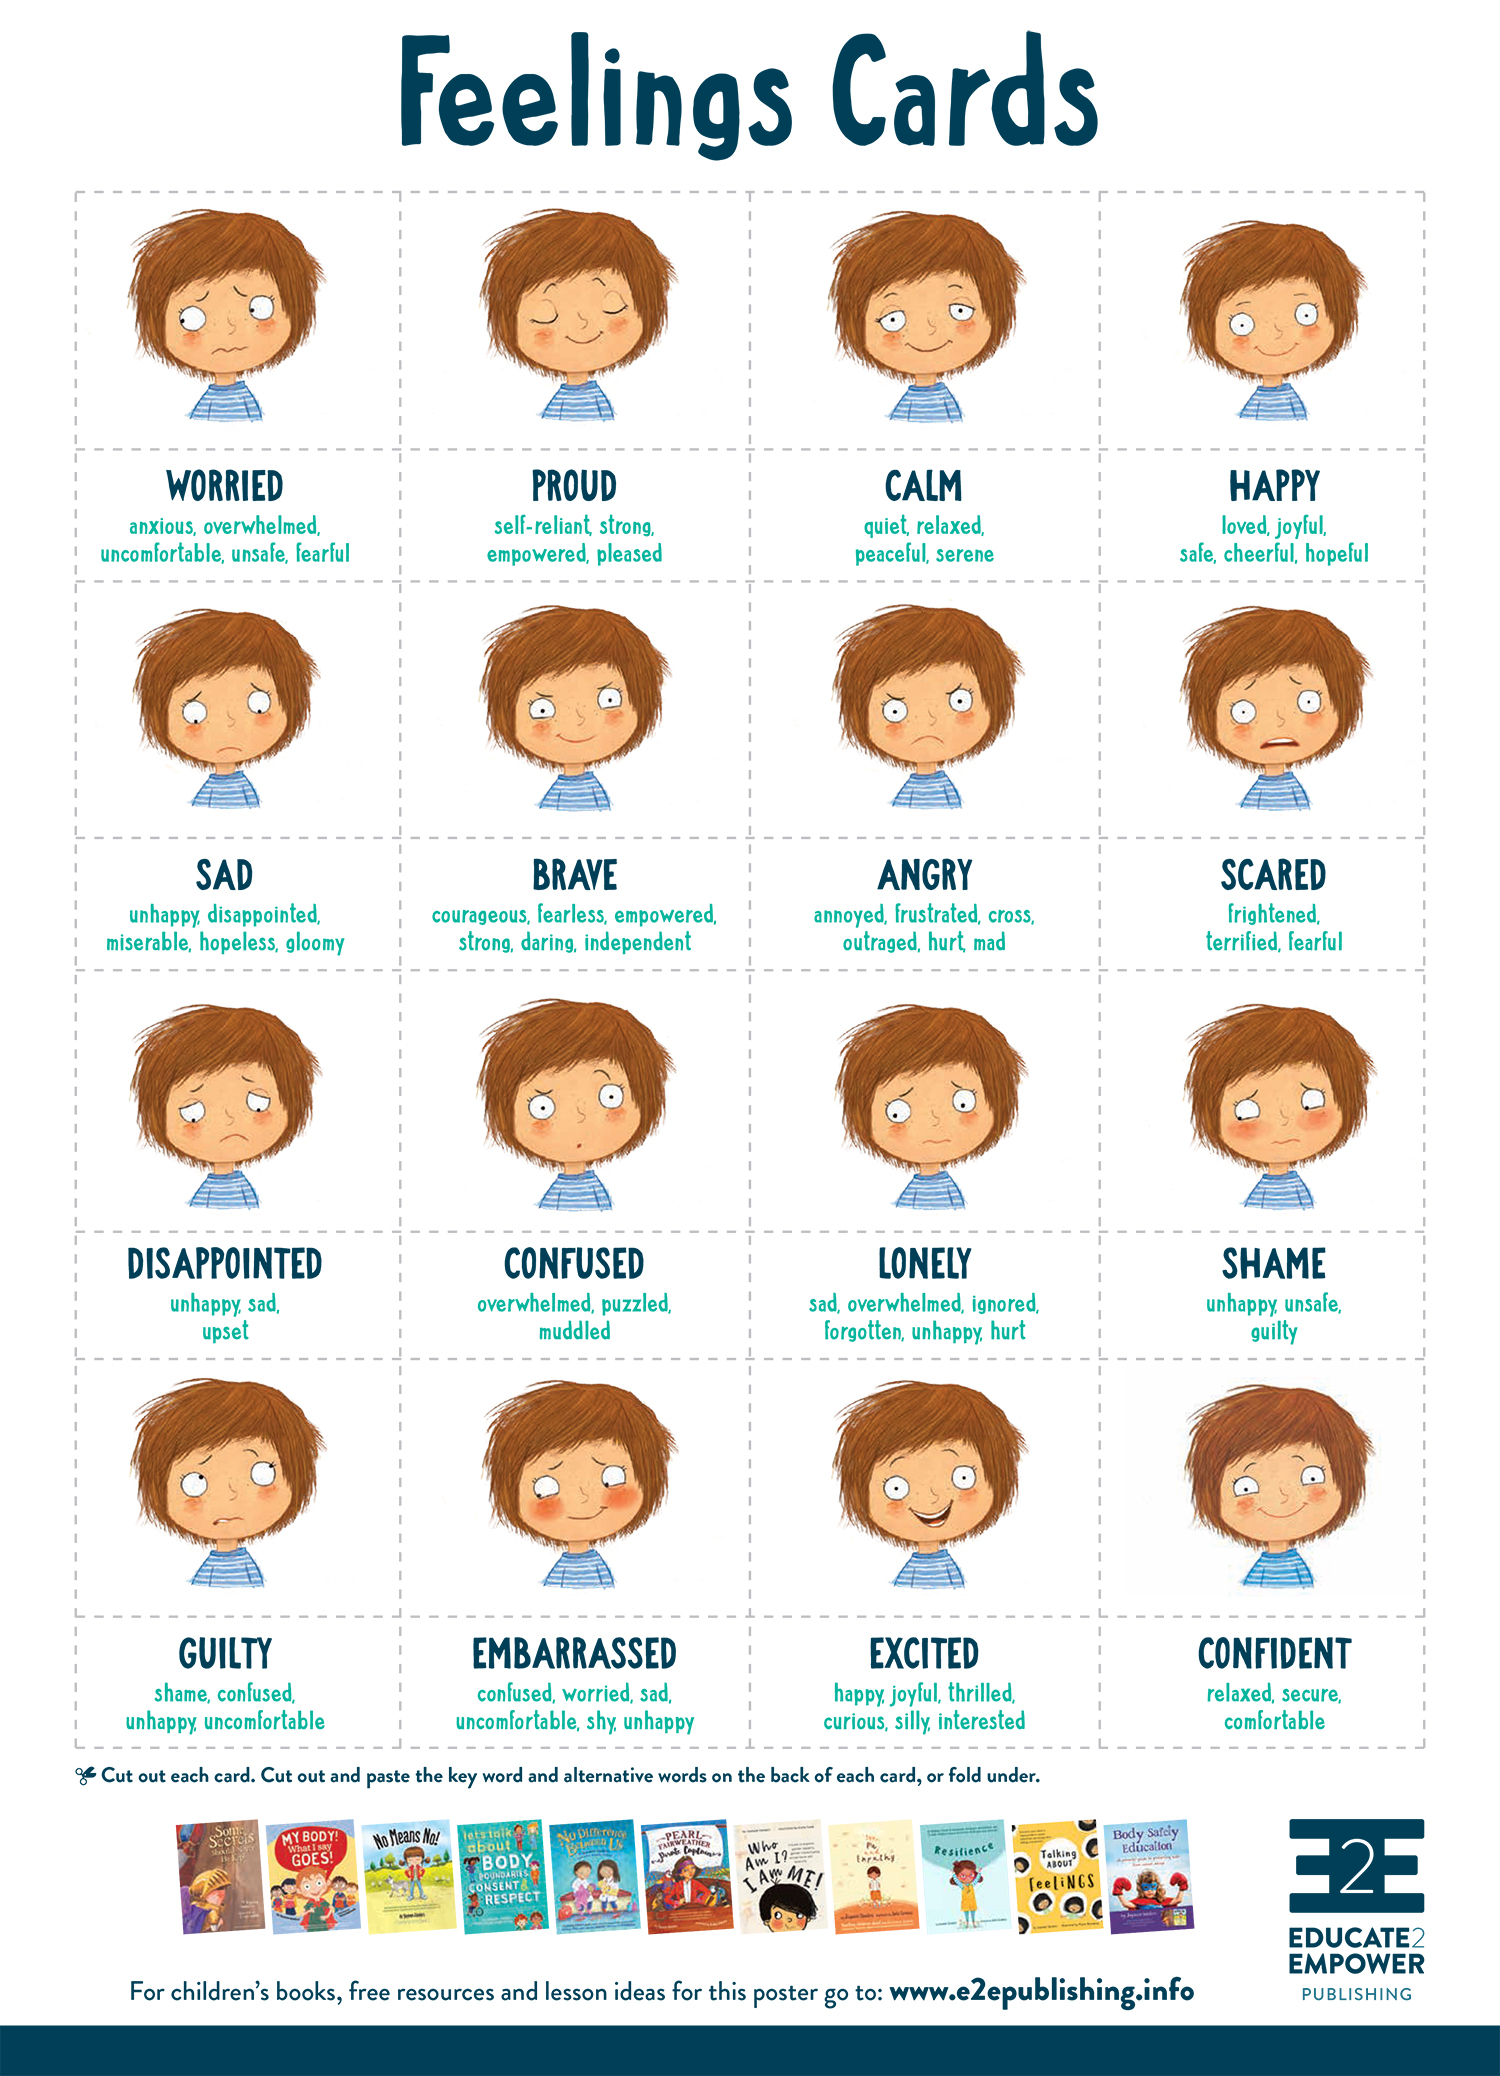 Feelings Cards(A3 Poster) - This poster has two major learning outcomes: 1. Help your child(ren) to more accurately express their feelings by developing their emotional vocabulary.2. Help your child learn to recognize the feelings of others by facial expressions.Would you like a copy? To download, right/control click on the linkand select